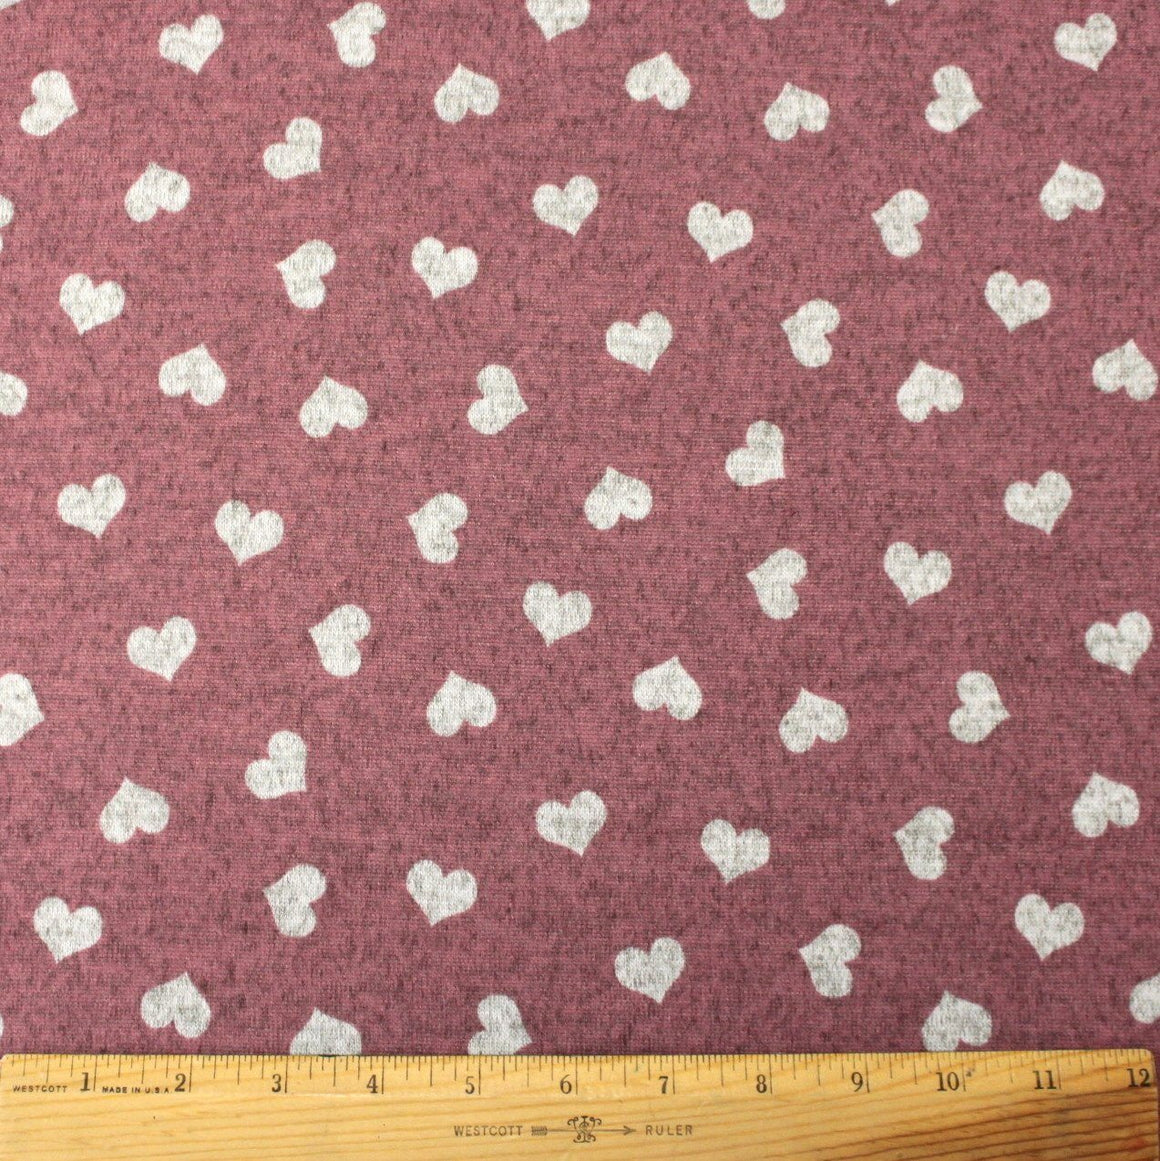 Mauve and Grey Tossed Heart Brushed Heathered Hacci Sweater Knit Fabric, 1 Yard